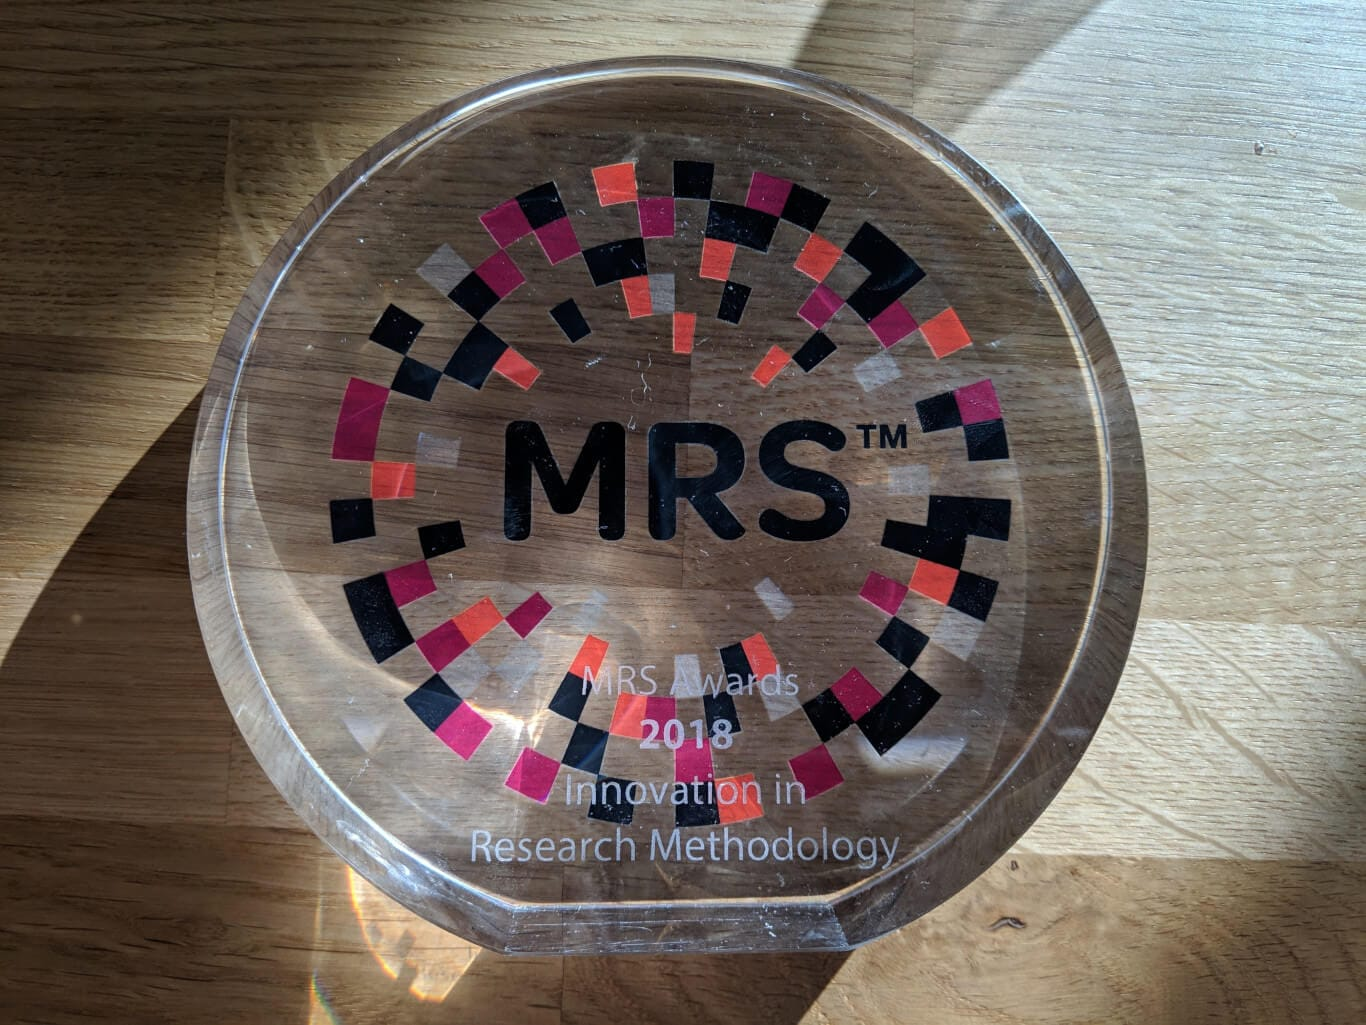 SKIM won MRS Innovation in Research Methodology Award 2018